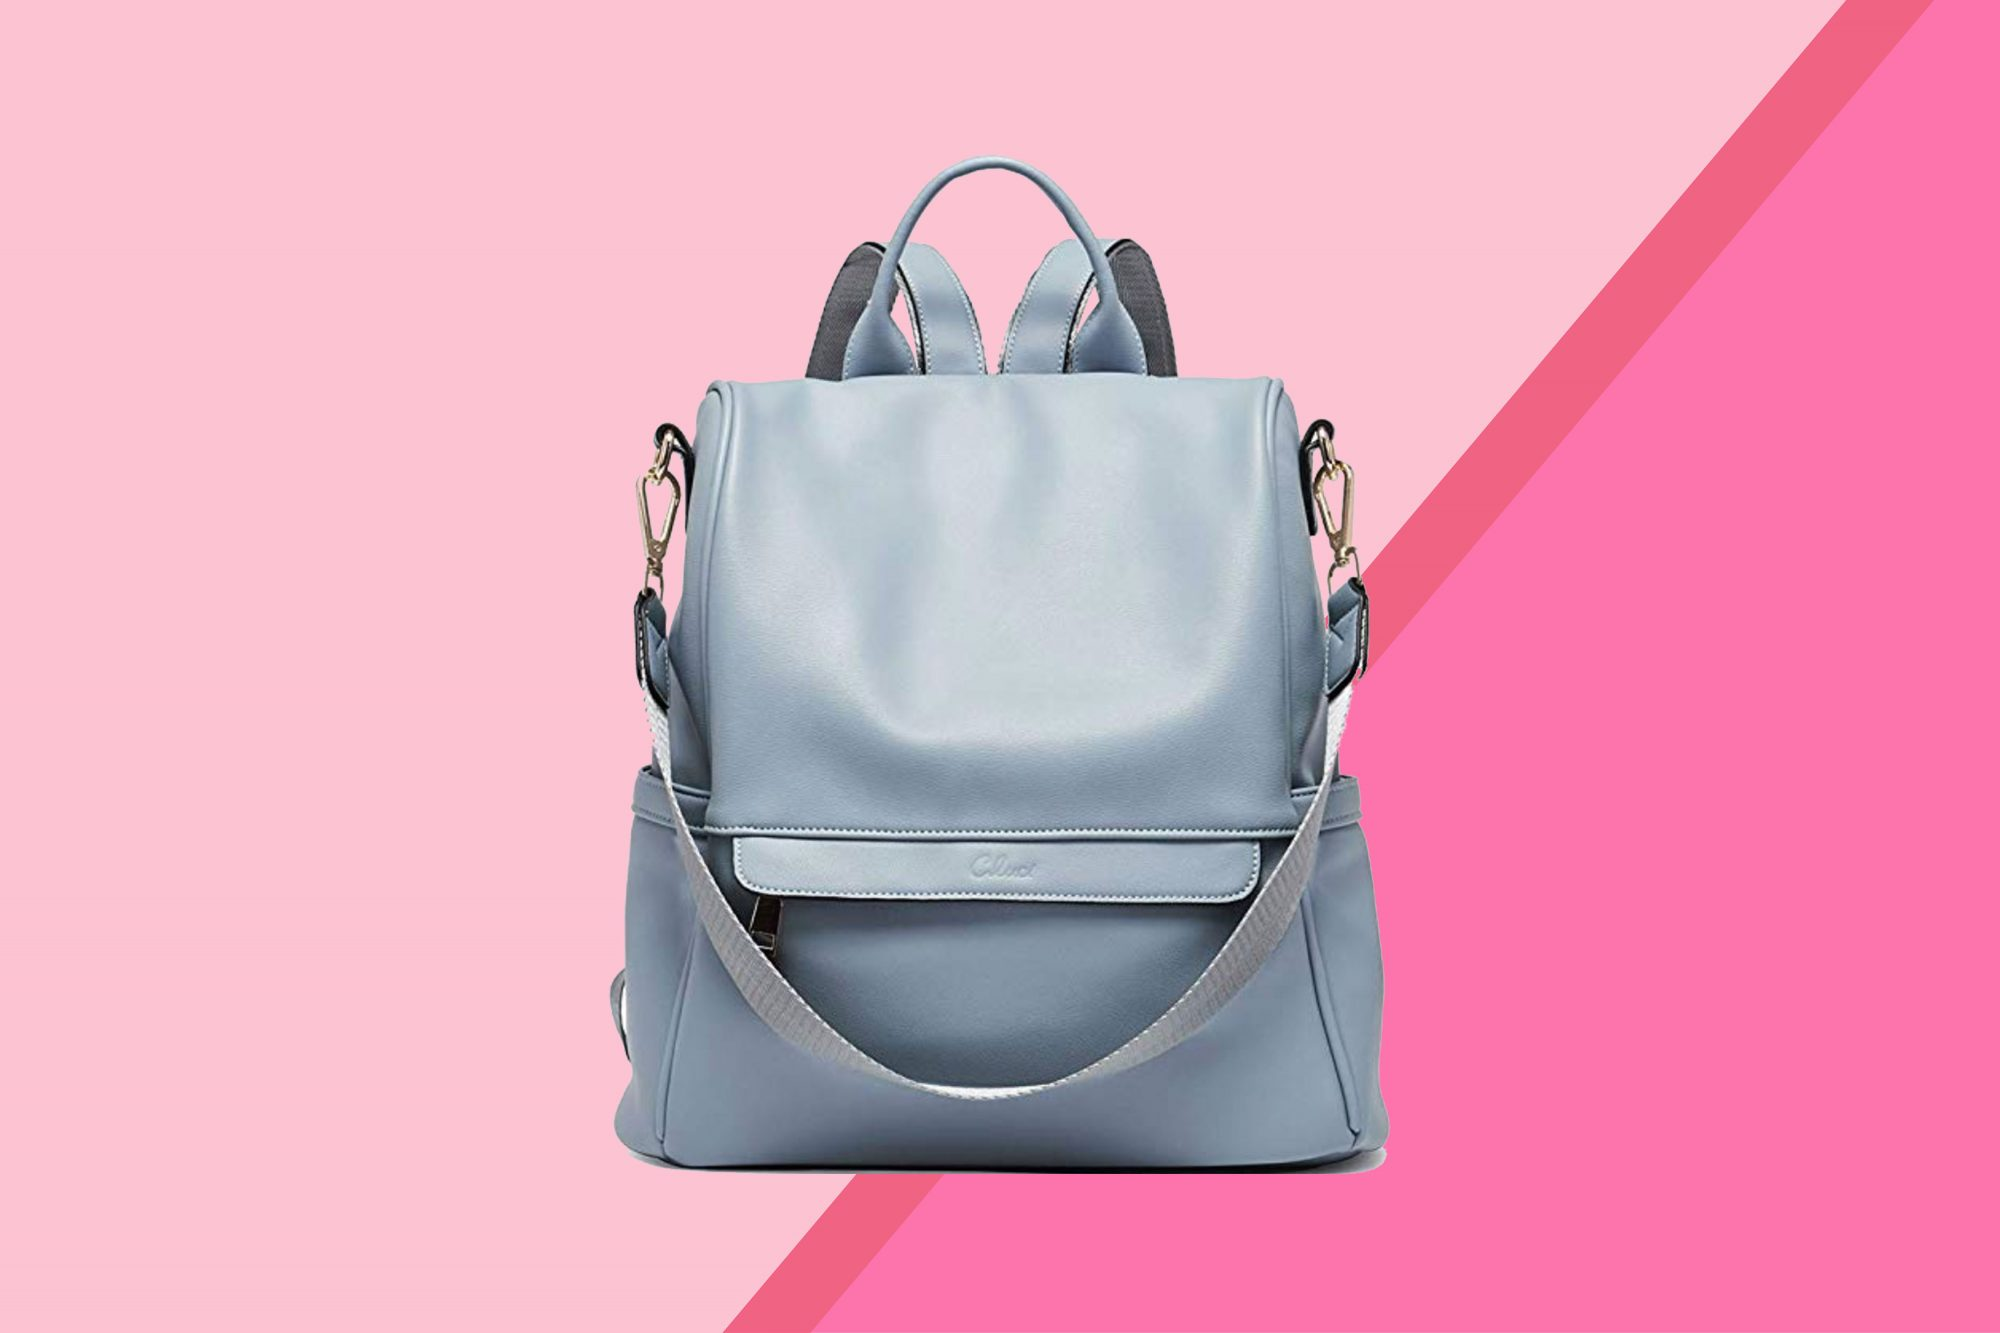 Convertible Tote Backpack Embed